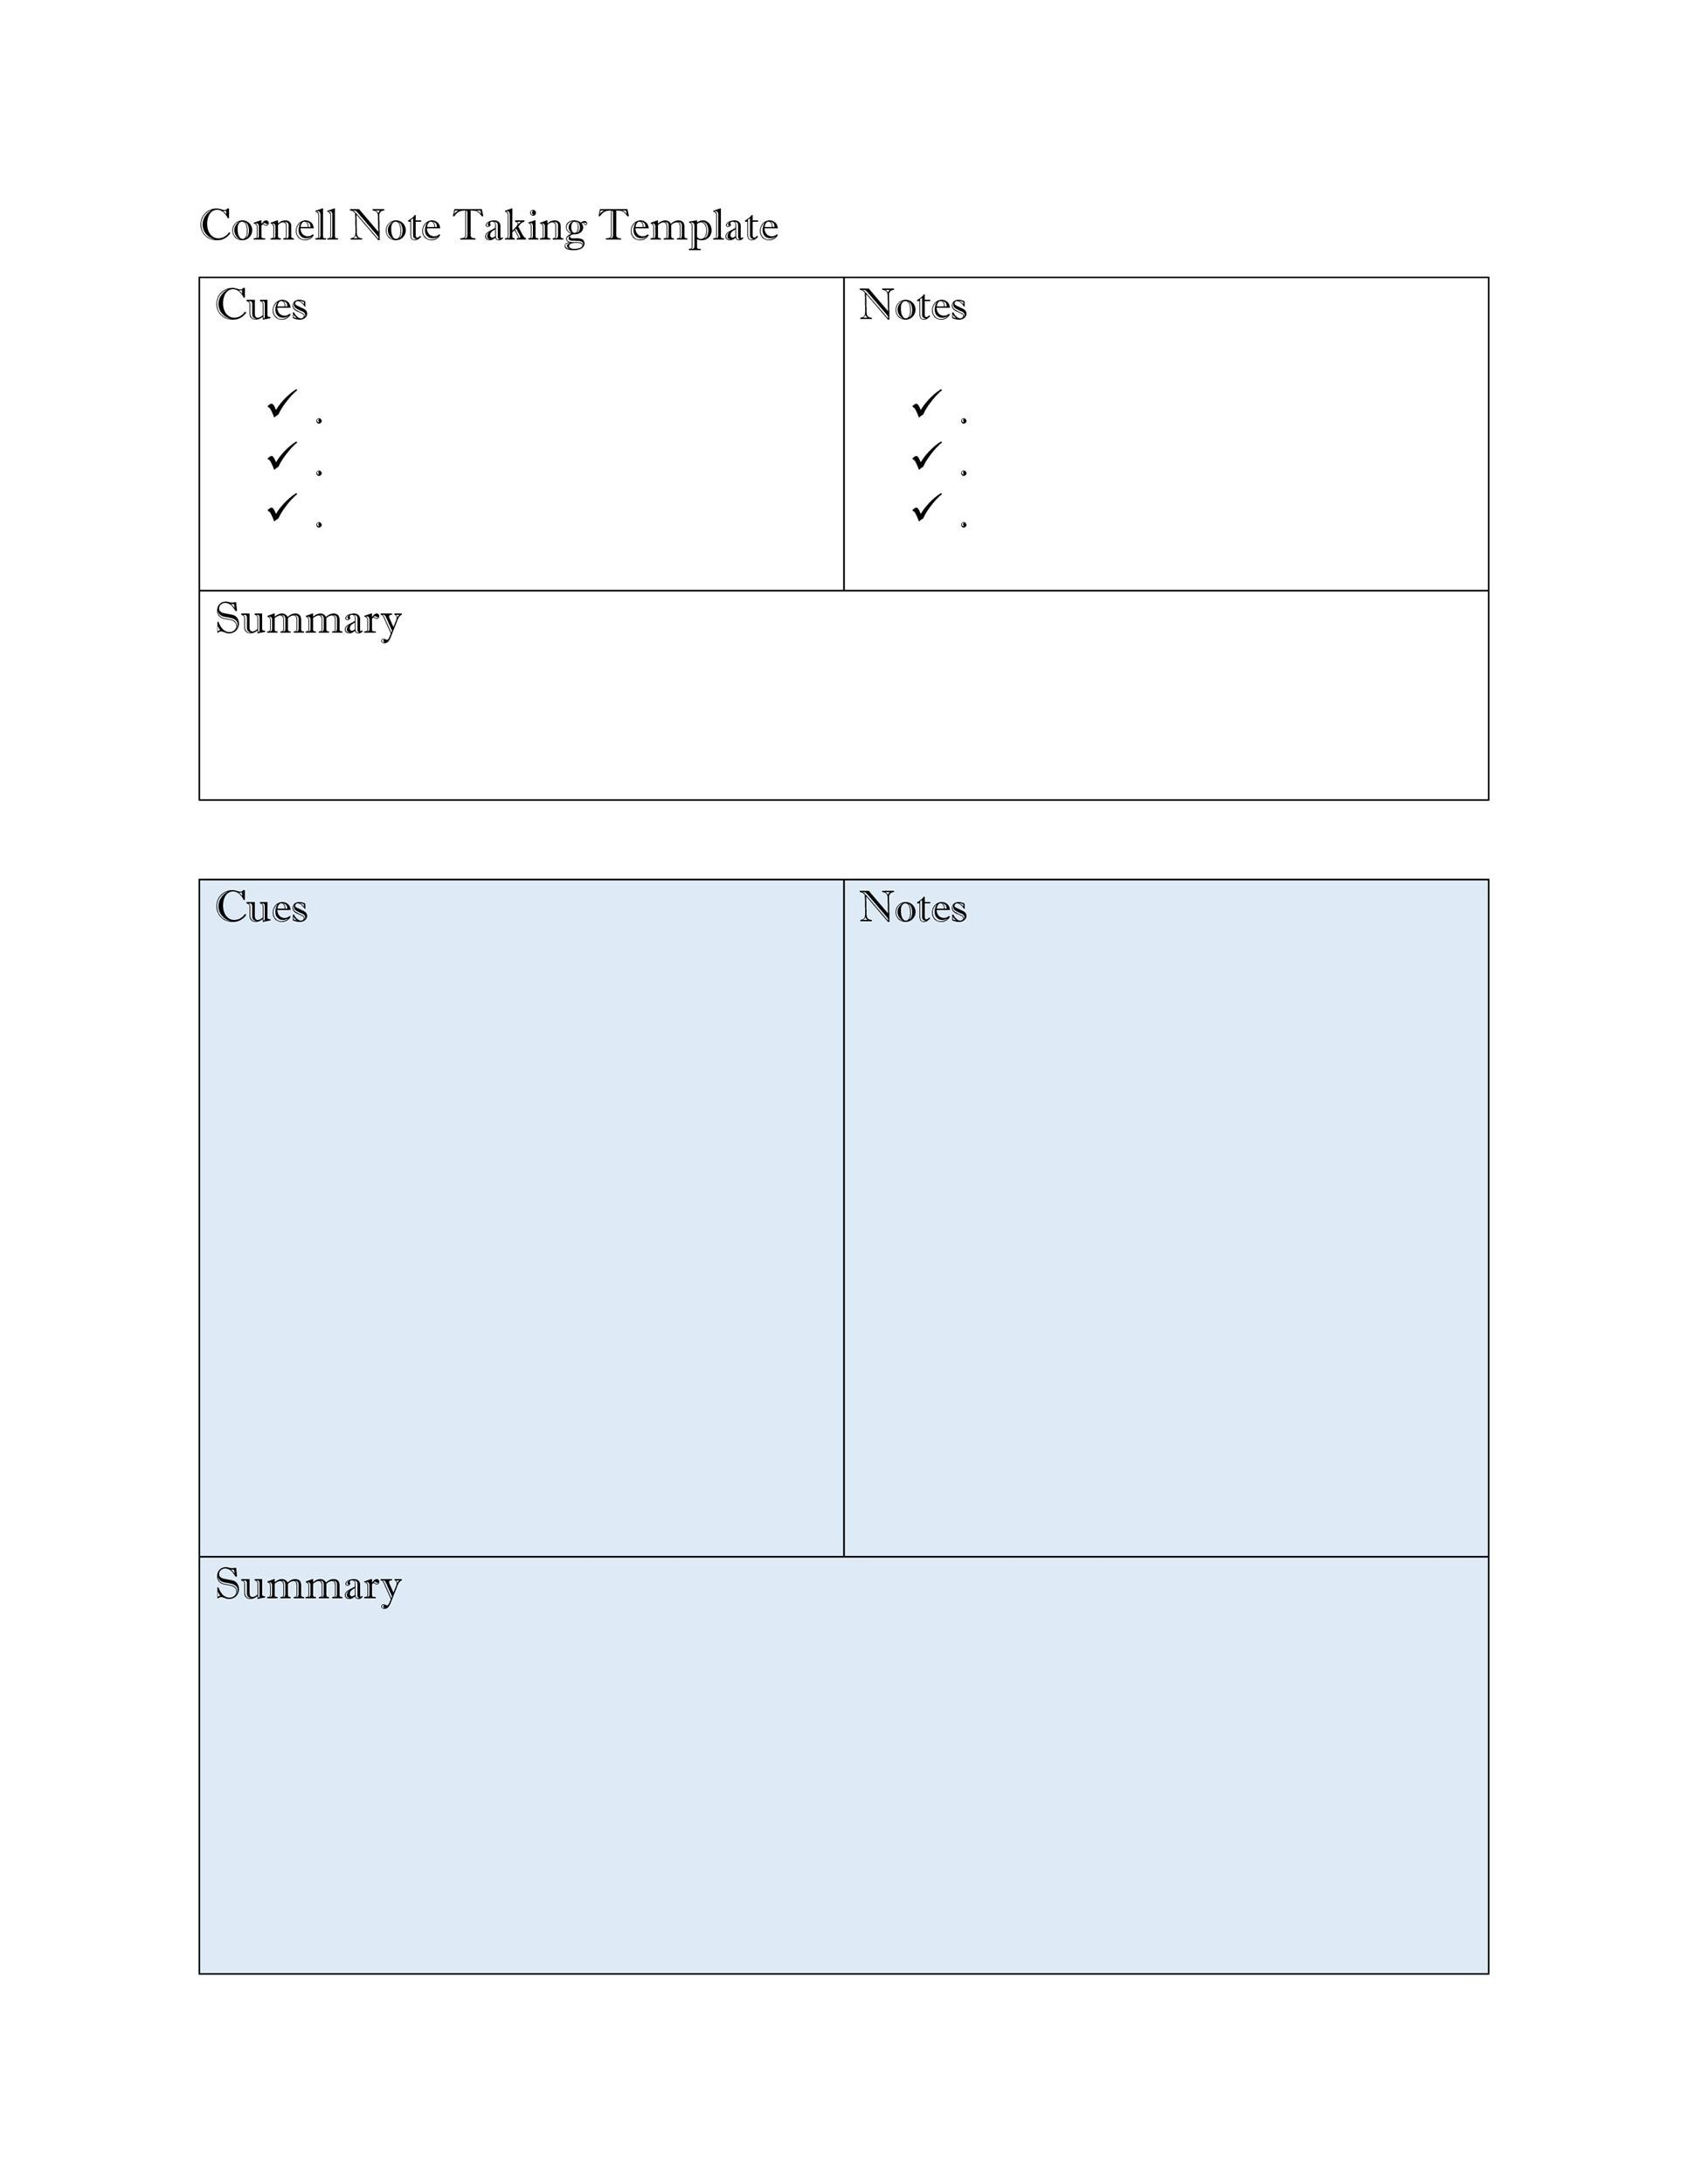 36 Cornell Notes Templates  Examples Word, PDF - Template Lab - Note Template